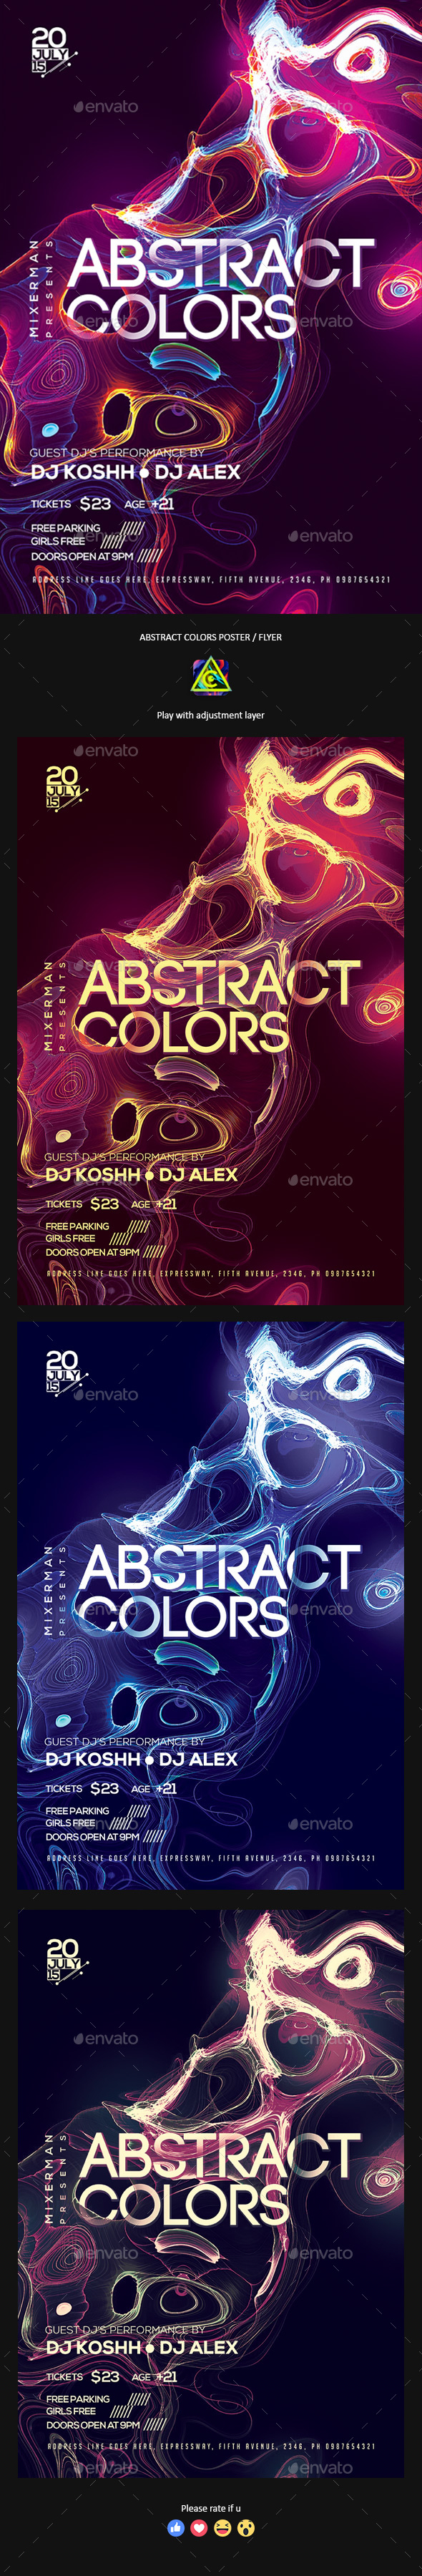 Abstract Colors Poster / Flyer - Clubs & Parties Events